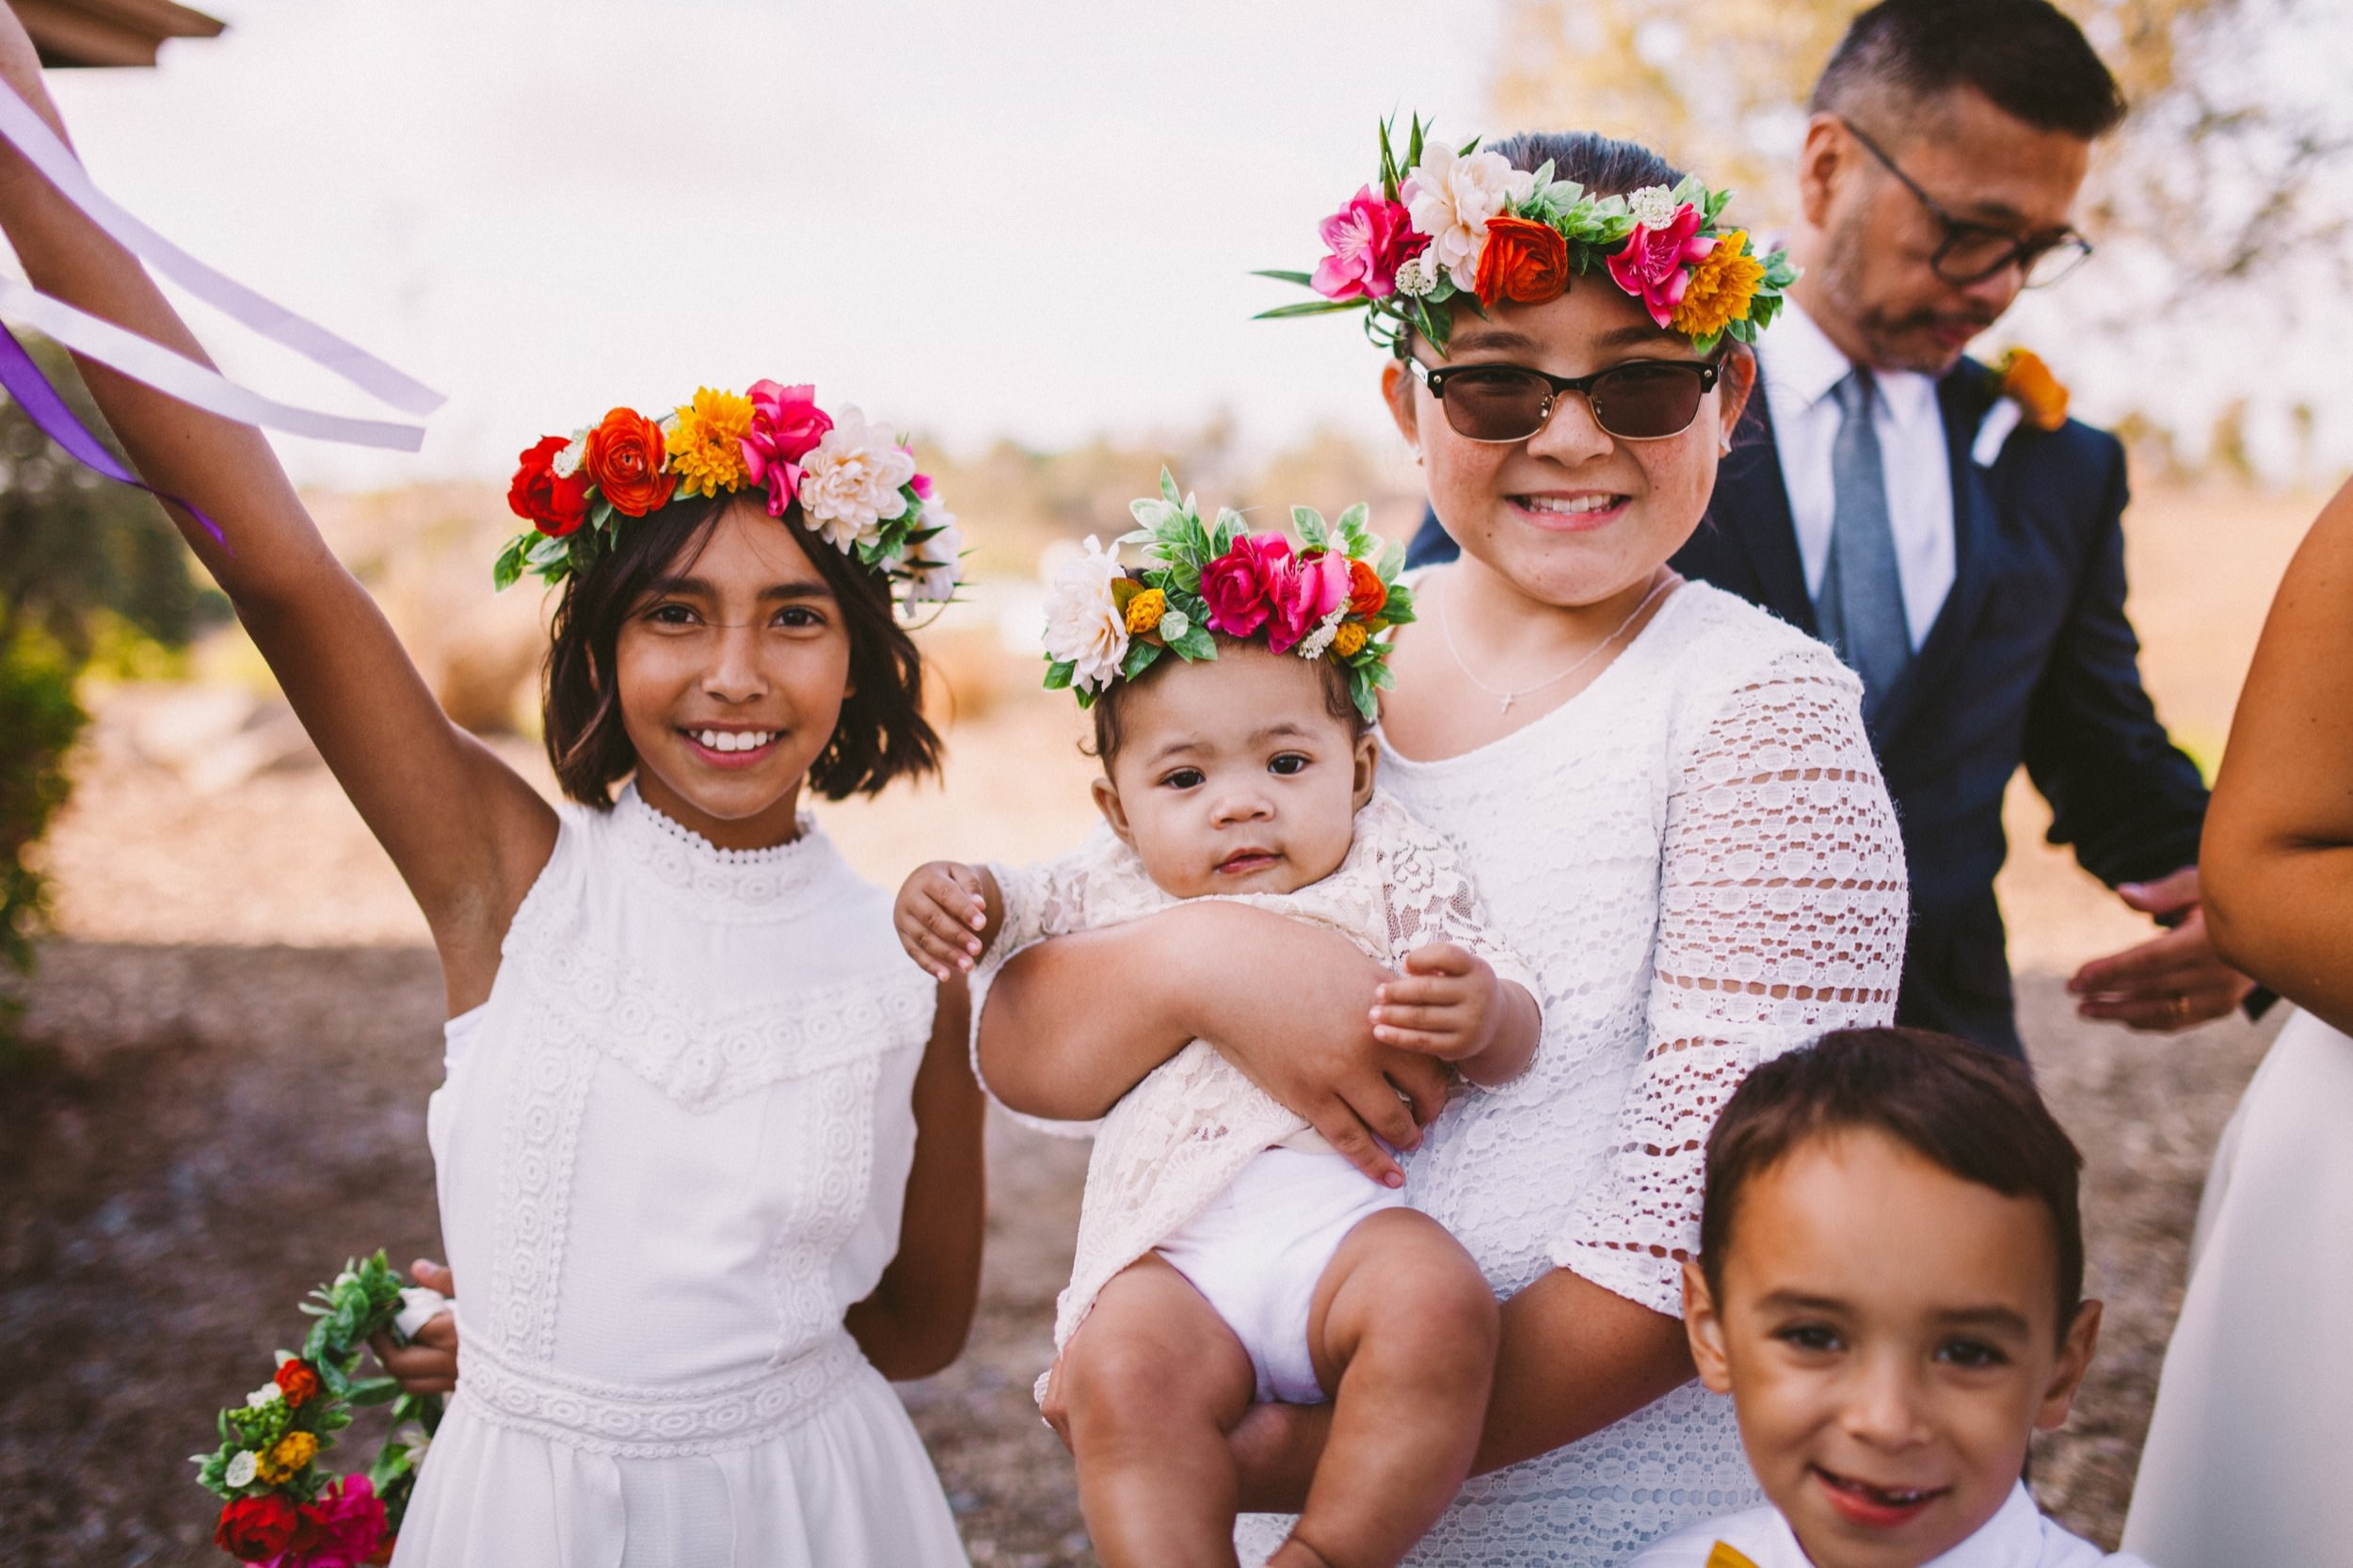 Flower Girls Matching in White and Vibrant, Colorful Flower Crowns